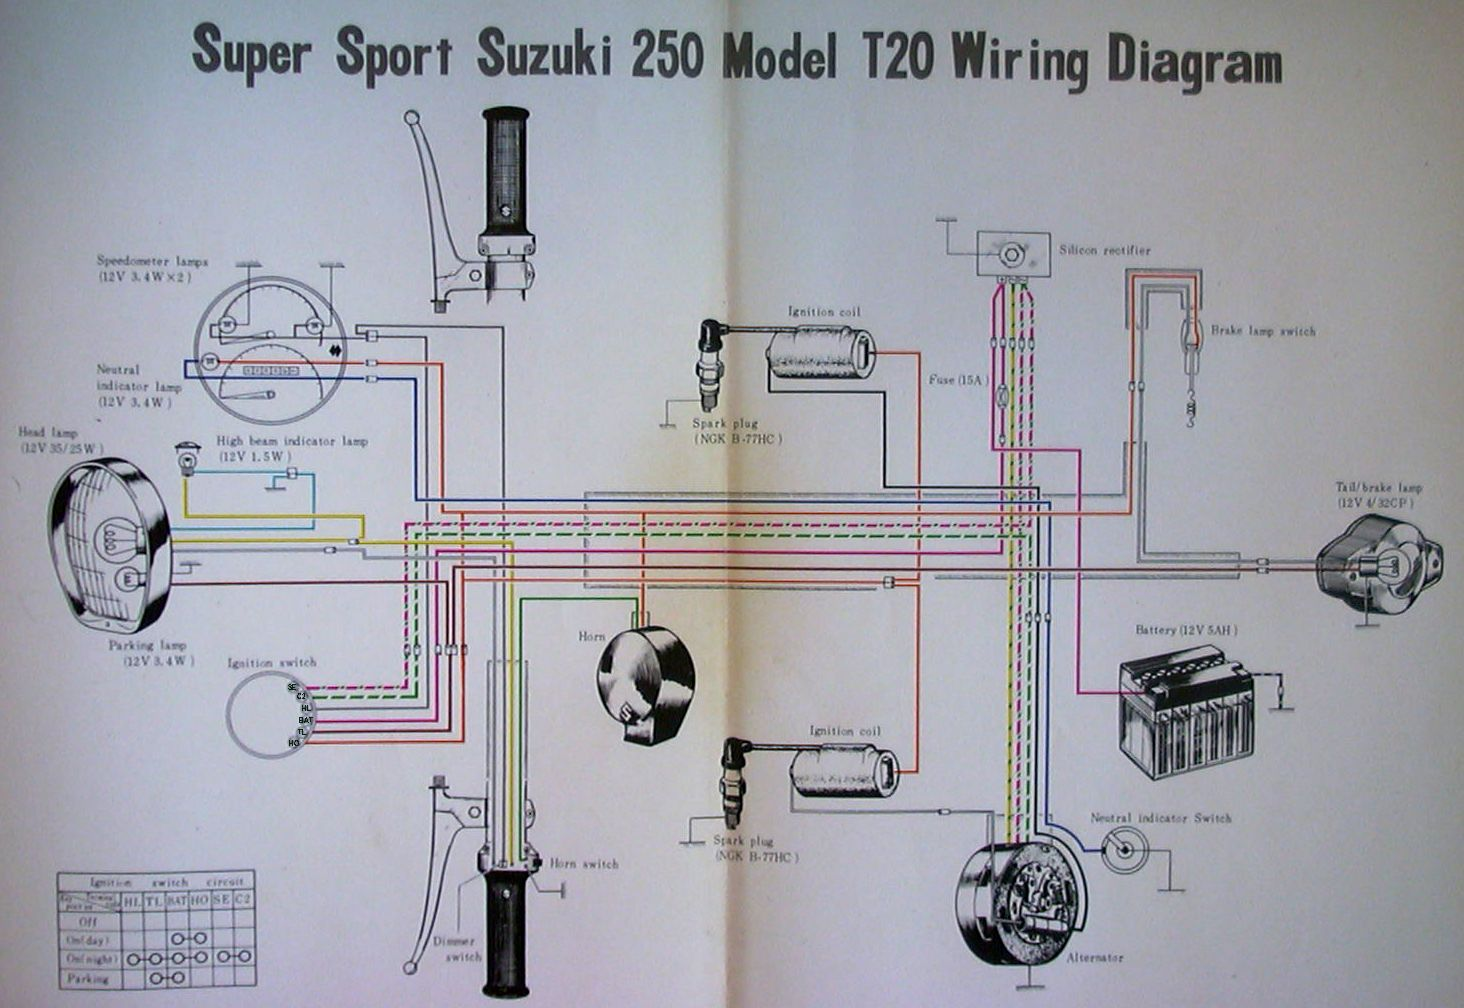 wiring the suzuki t20 'super six' x6 wiring diagram suzuki intruder wiring diagram at panicattacktreatment.co